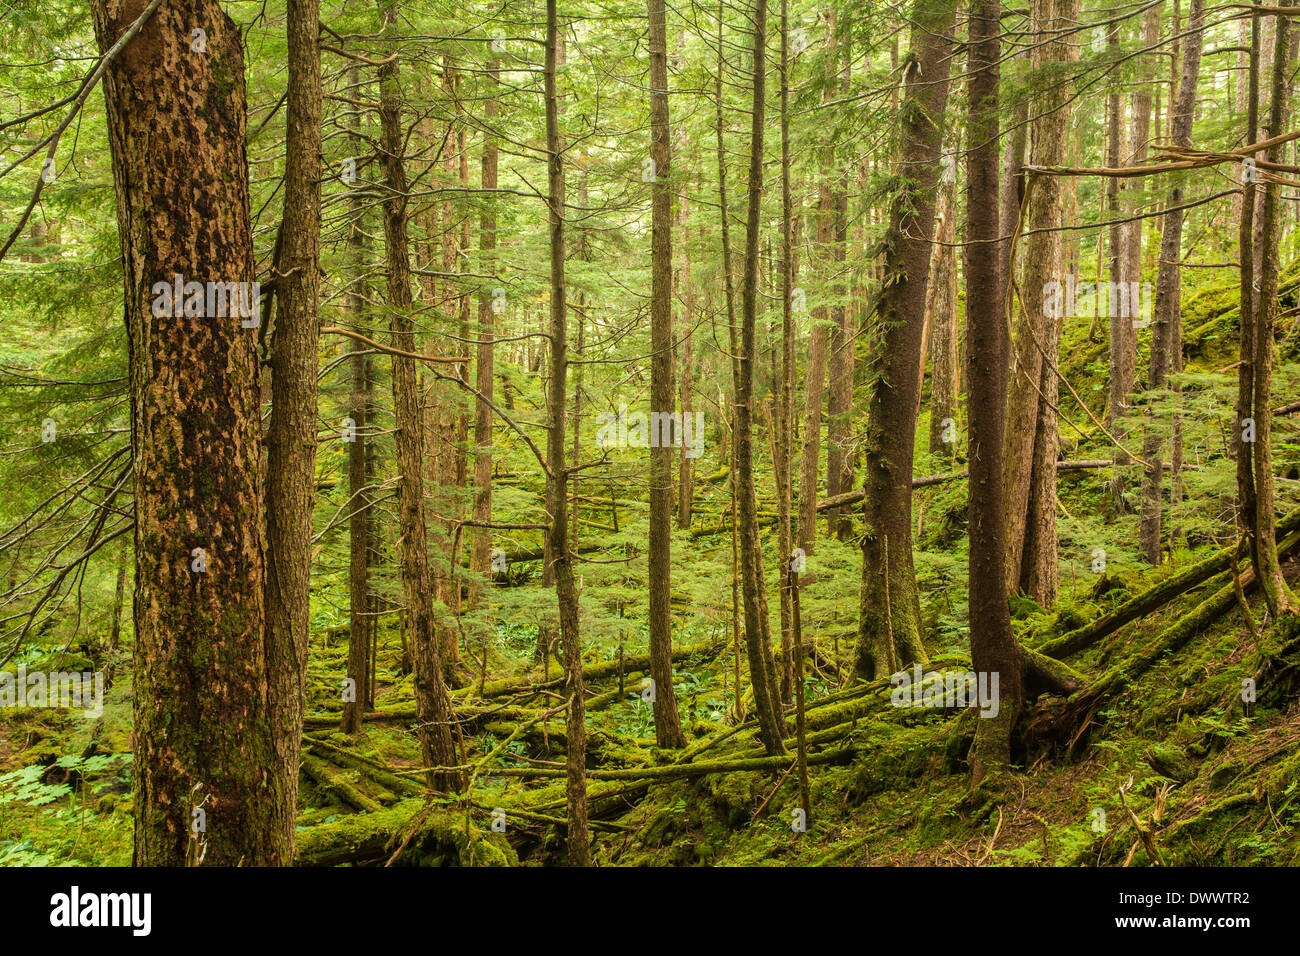 Tongass National Forest, temperate rain forest, Southeast Alaska, USA - Stock Image